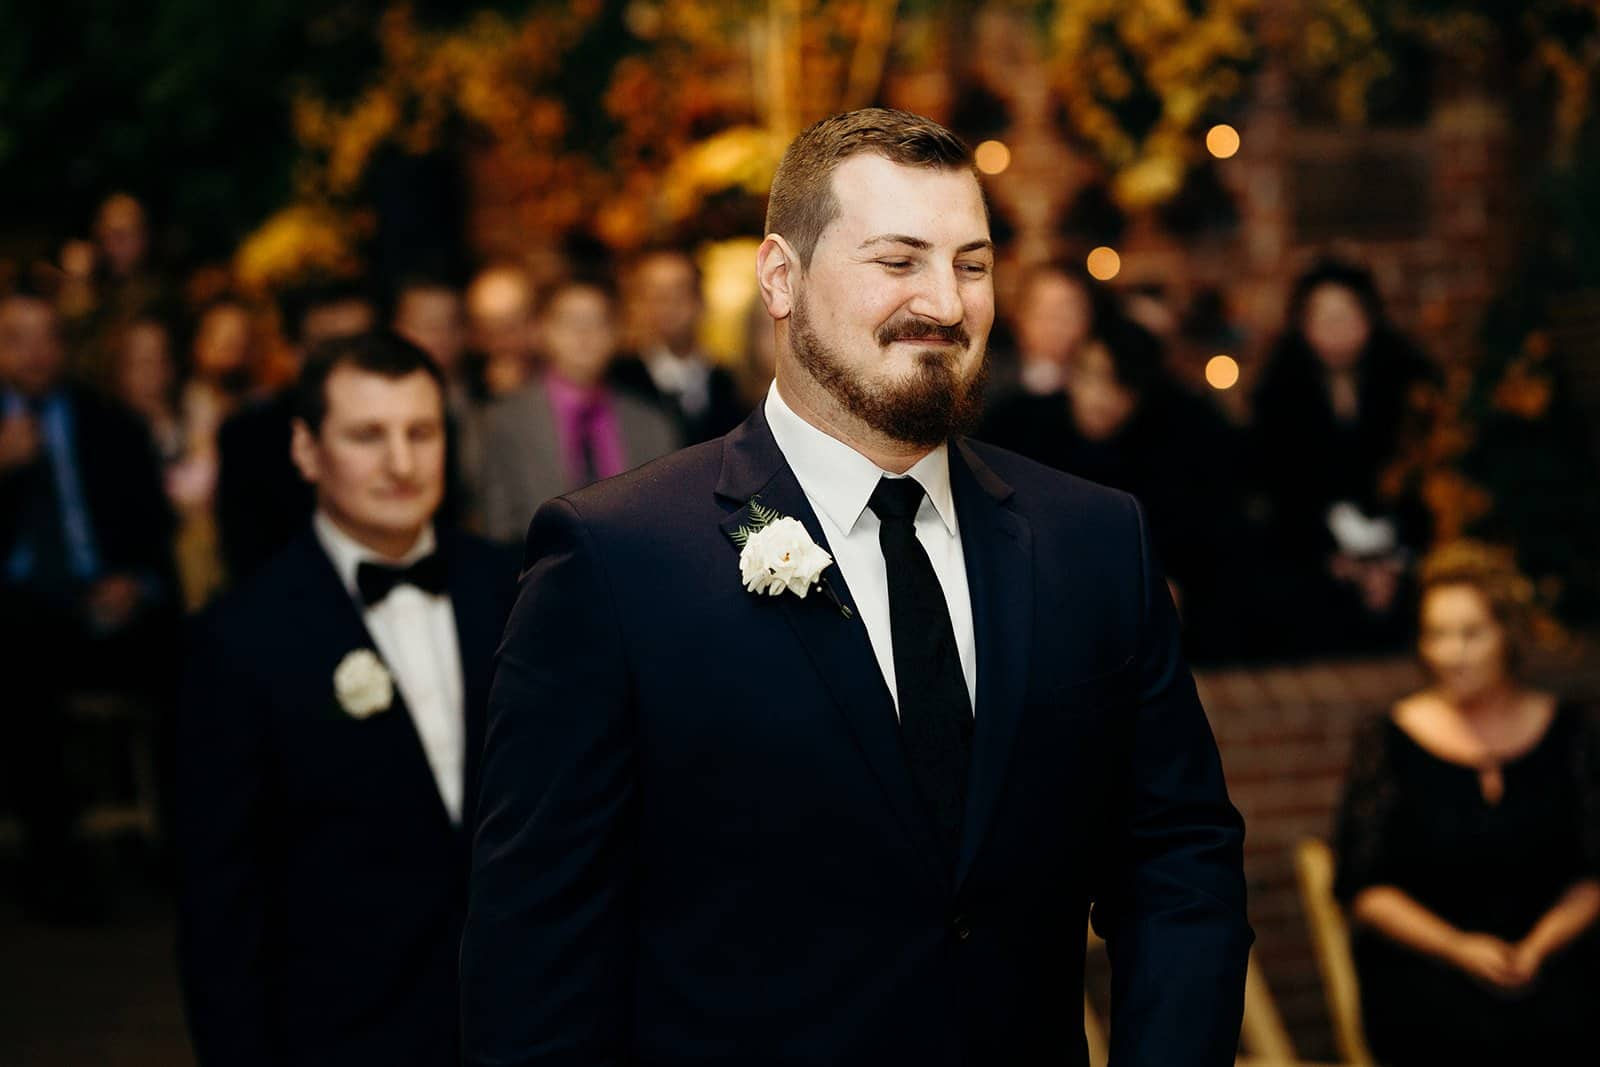 groom smiling and walking